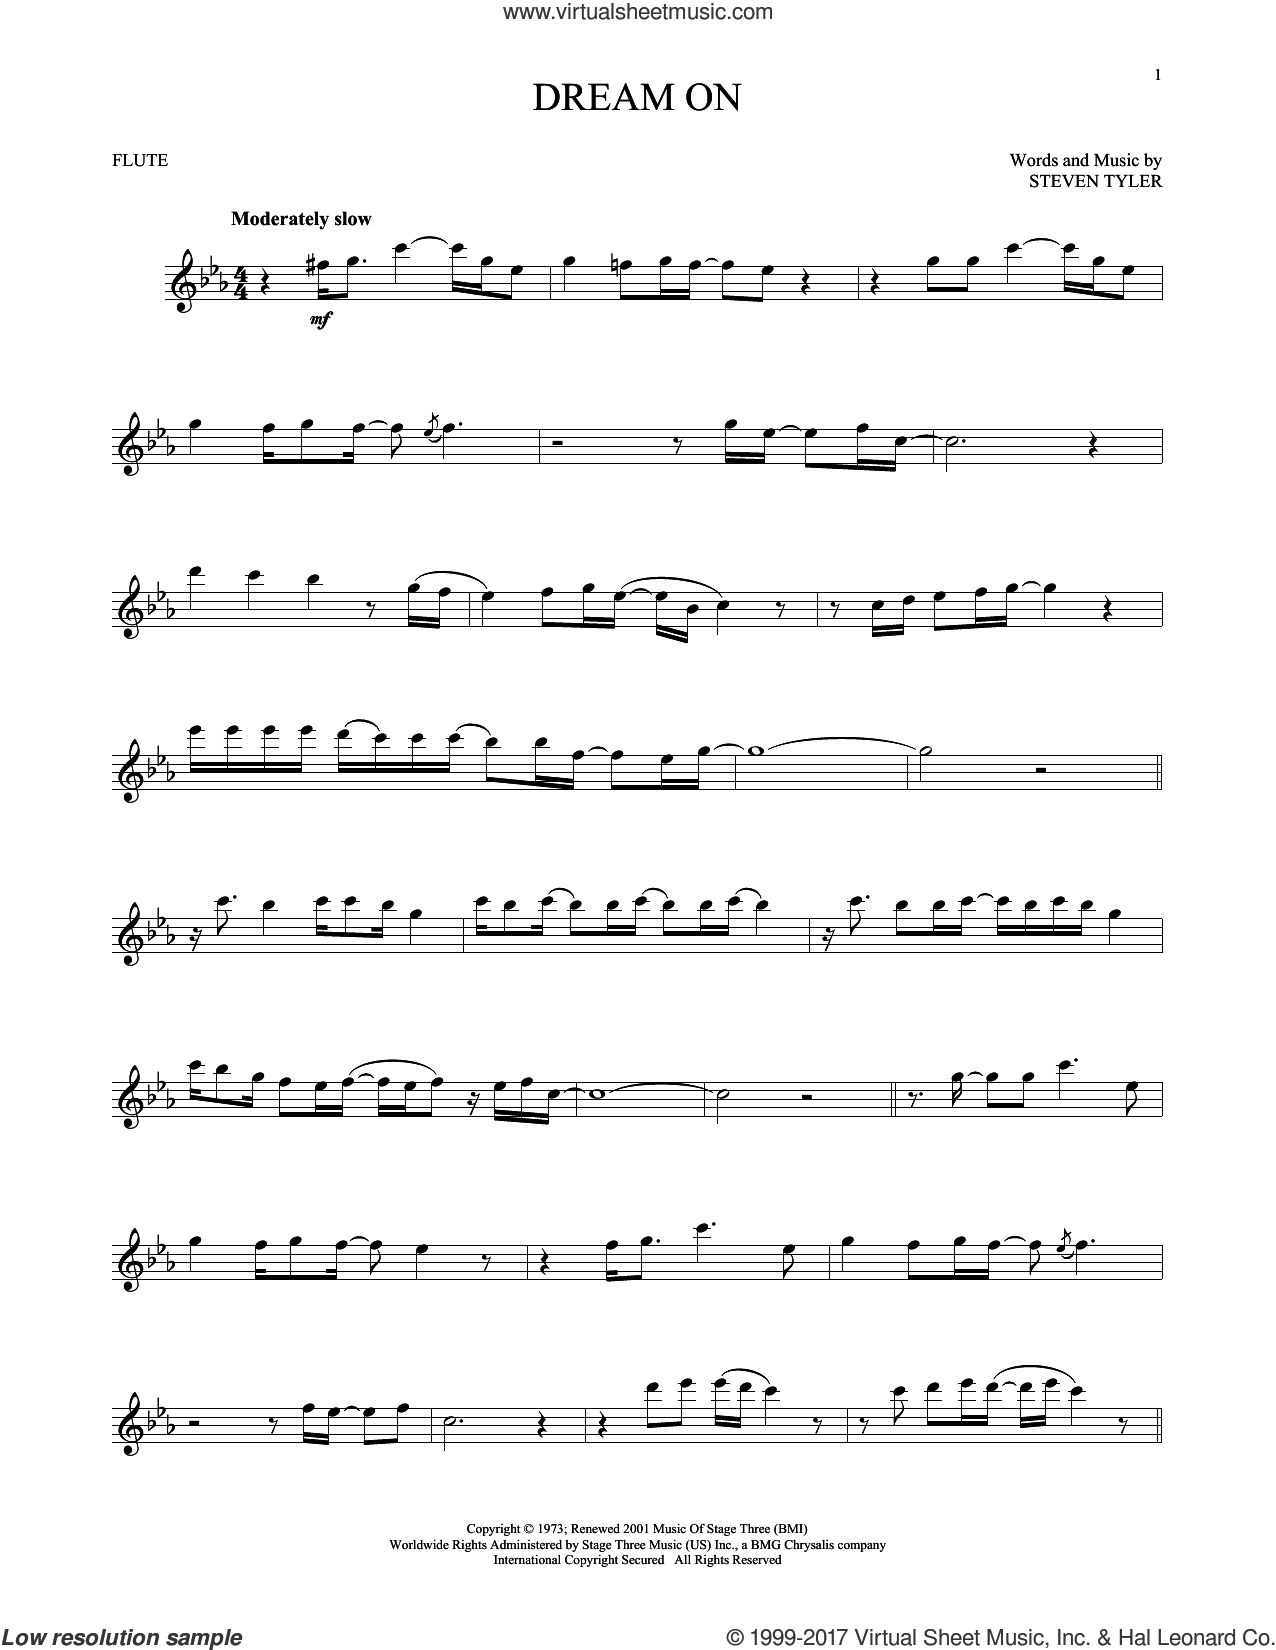 Dream On sheet music for flute solo by Aerosmith and Steven Tyler, intermediate skill level